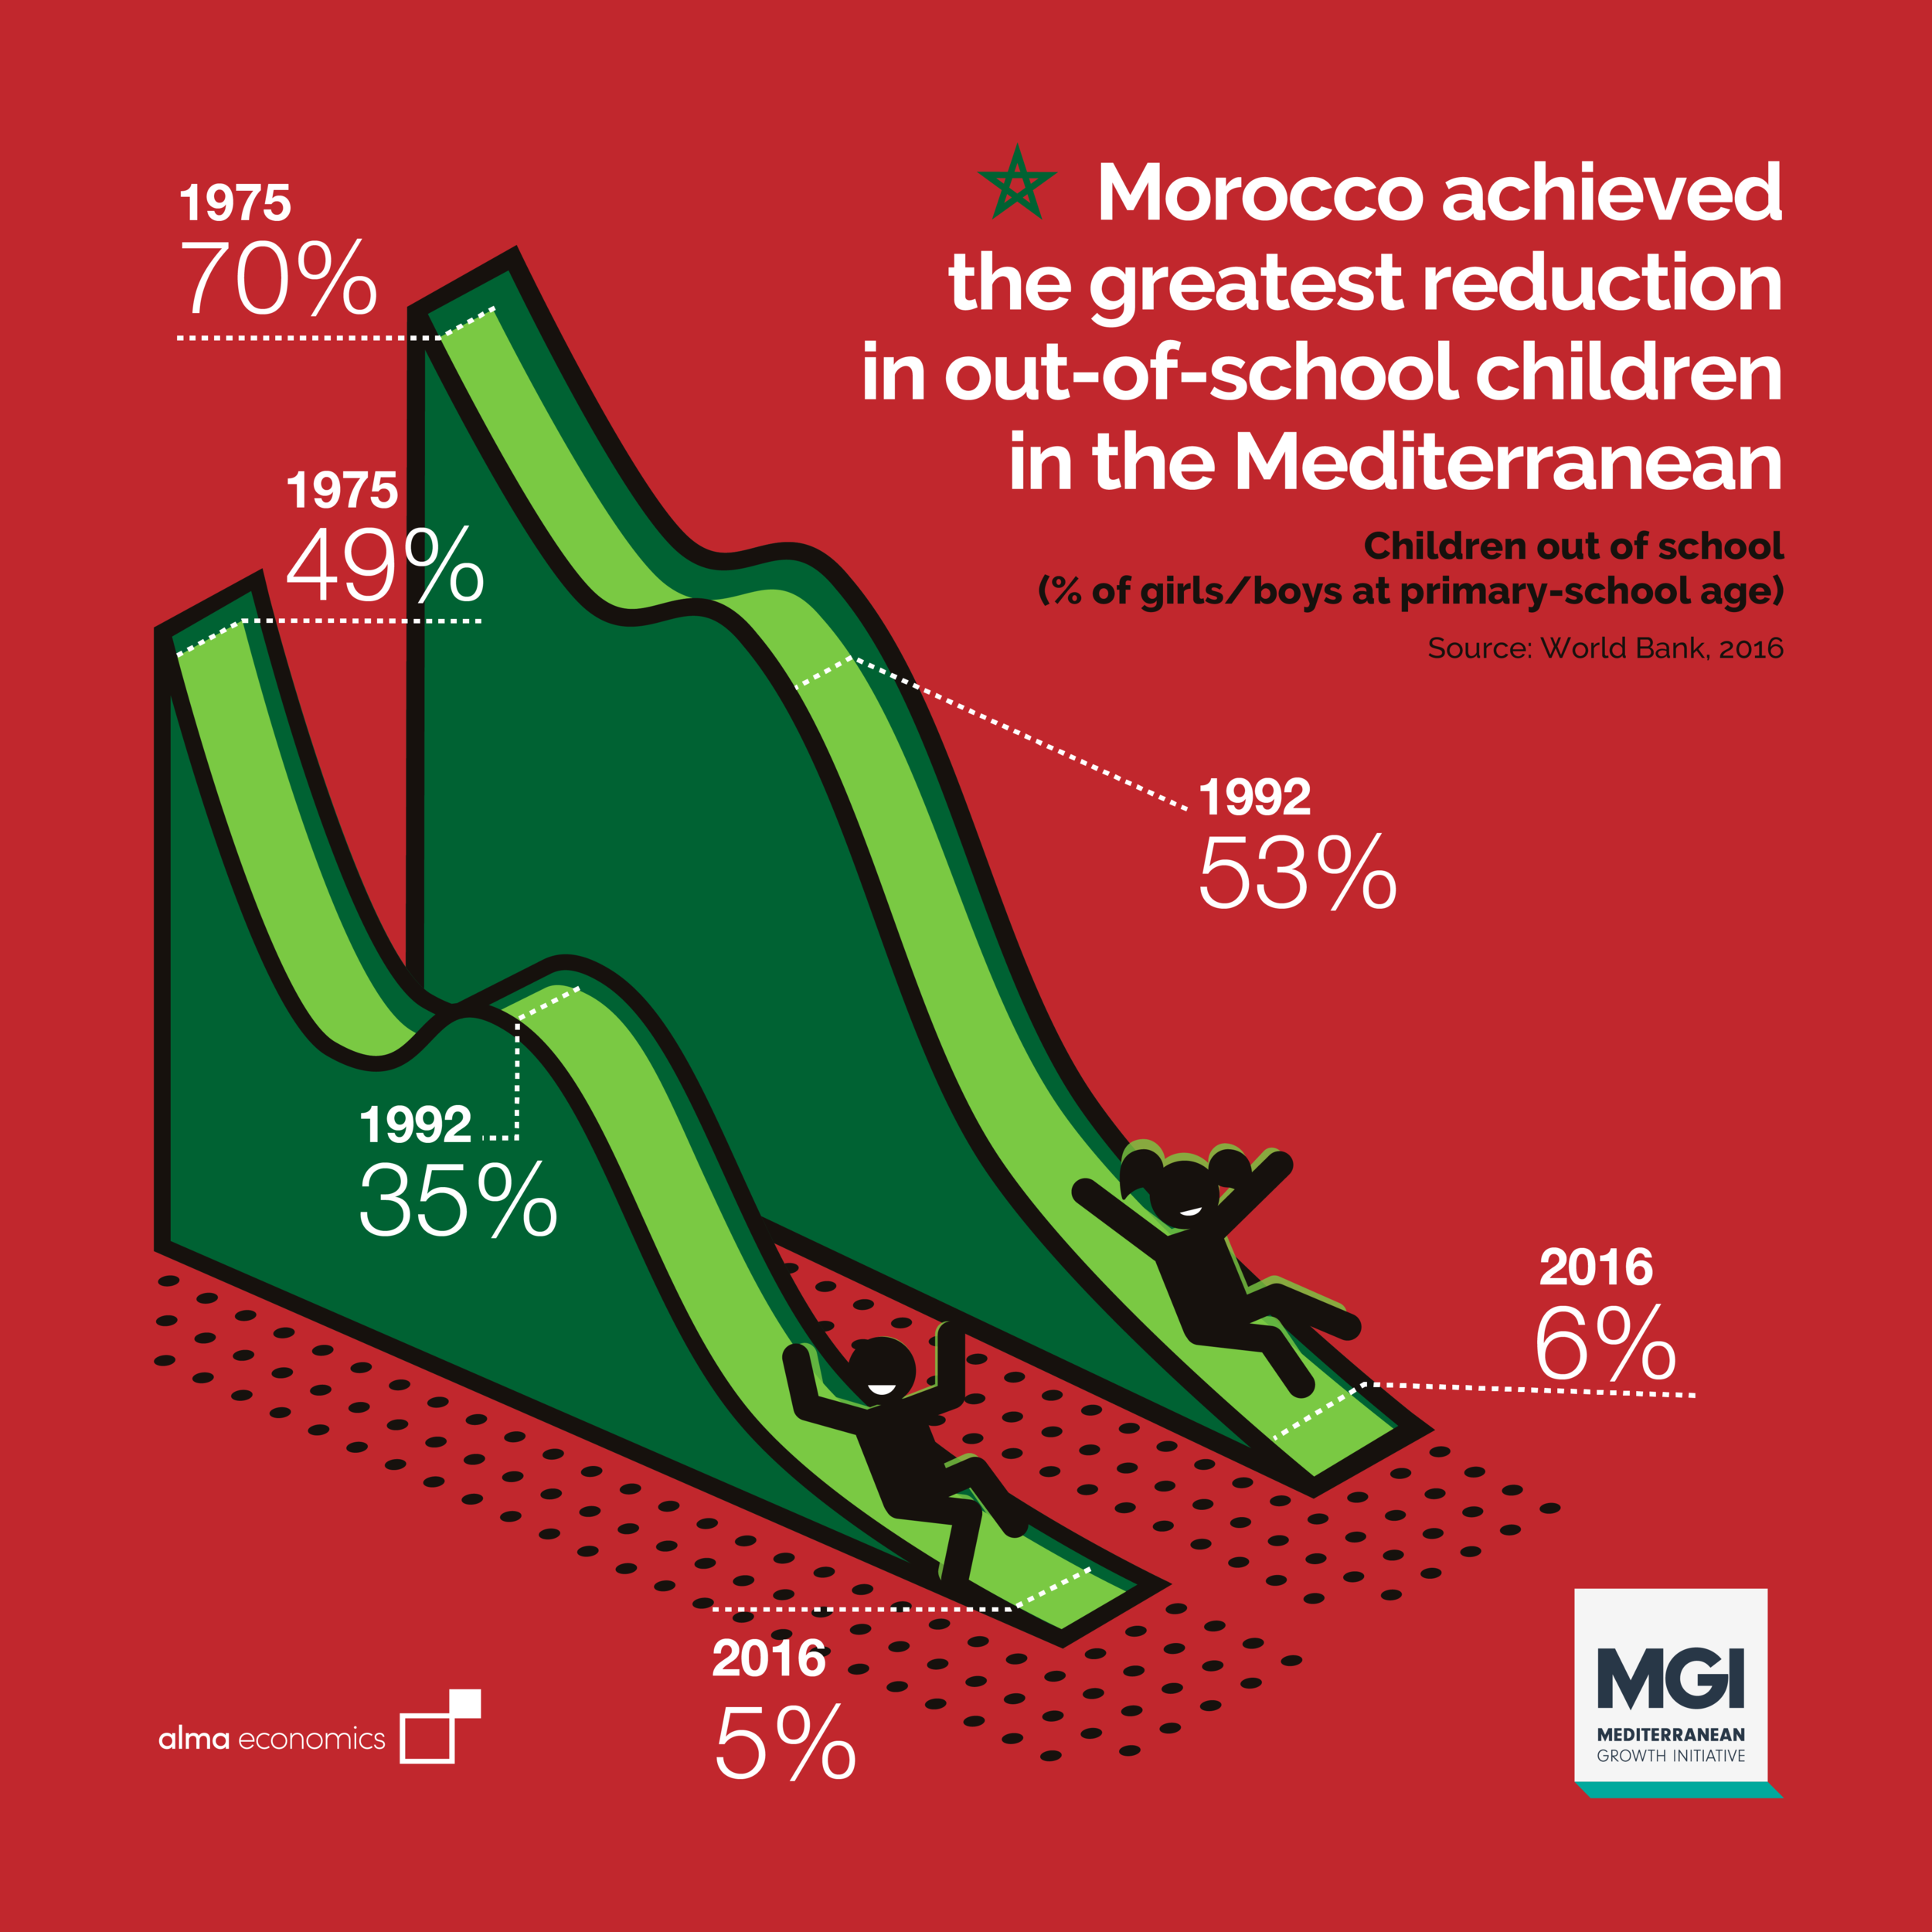 Greatest reduction in out-of-school children in the Med - Over 94% of Morocco's children now go to school, up from 30% for girls and 51% for boys in 1975